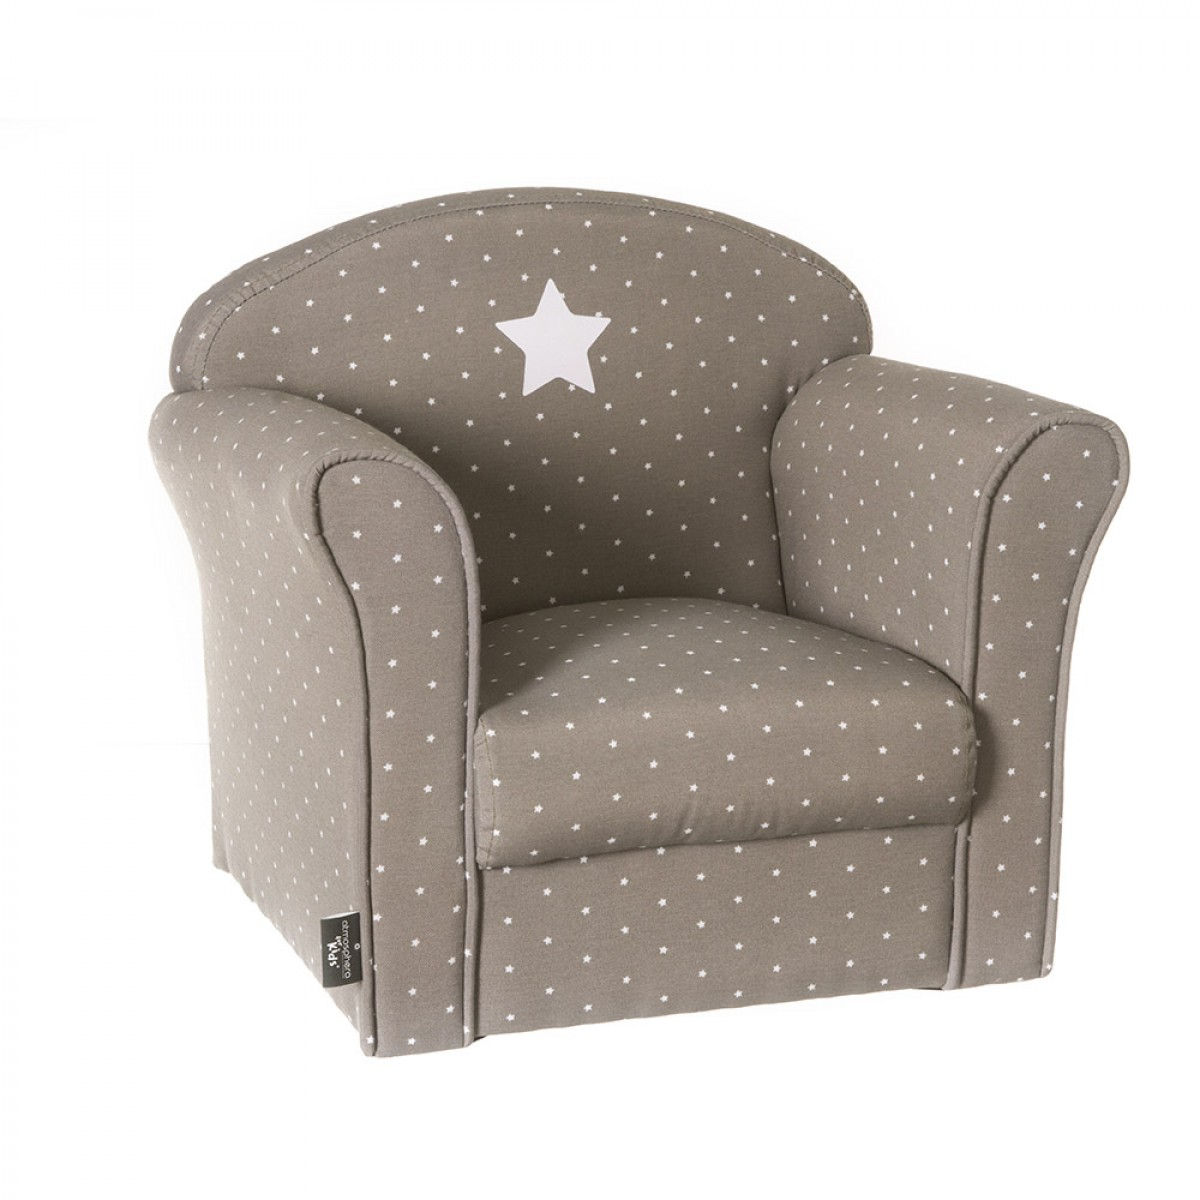 fauteuil taupe pour enfant les douces nuits de ma linge de maison. Black Bedroom Furniture Sets. Home Design Ideas